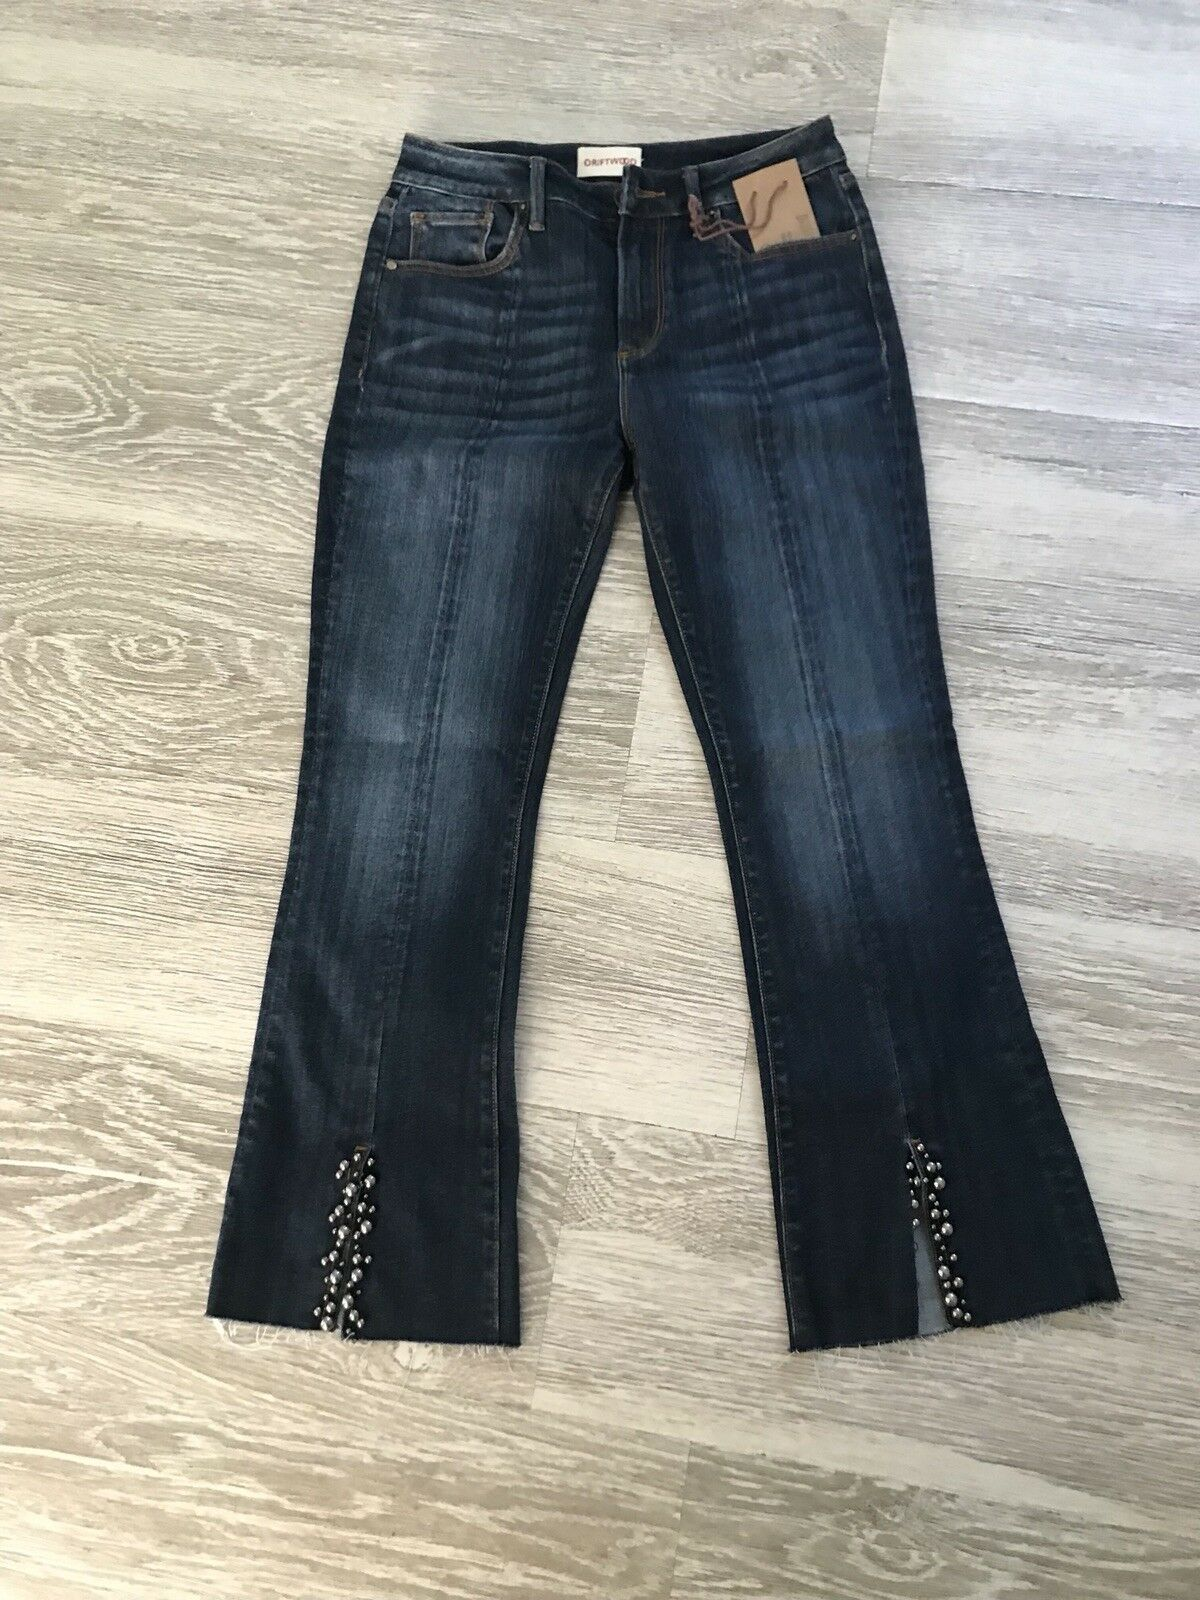 Anthropologie Driftwood Roxy Flare Jeans size 26